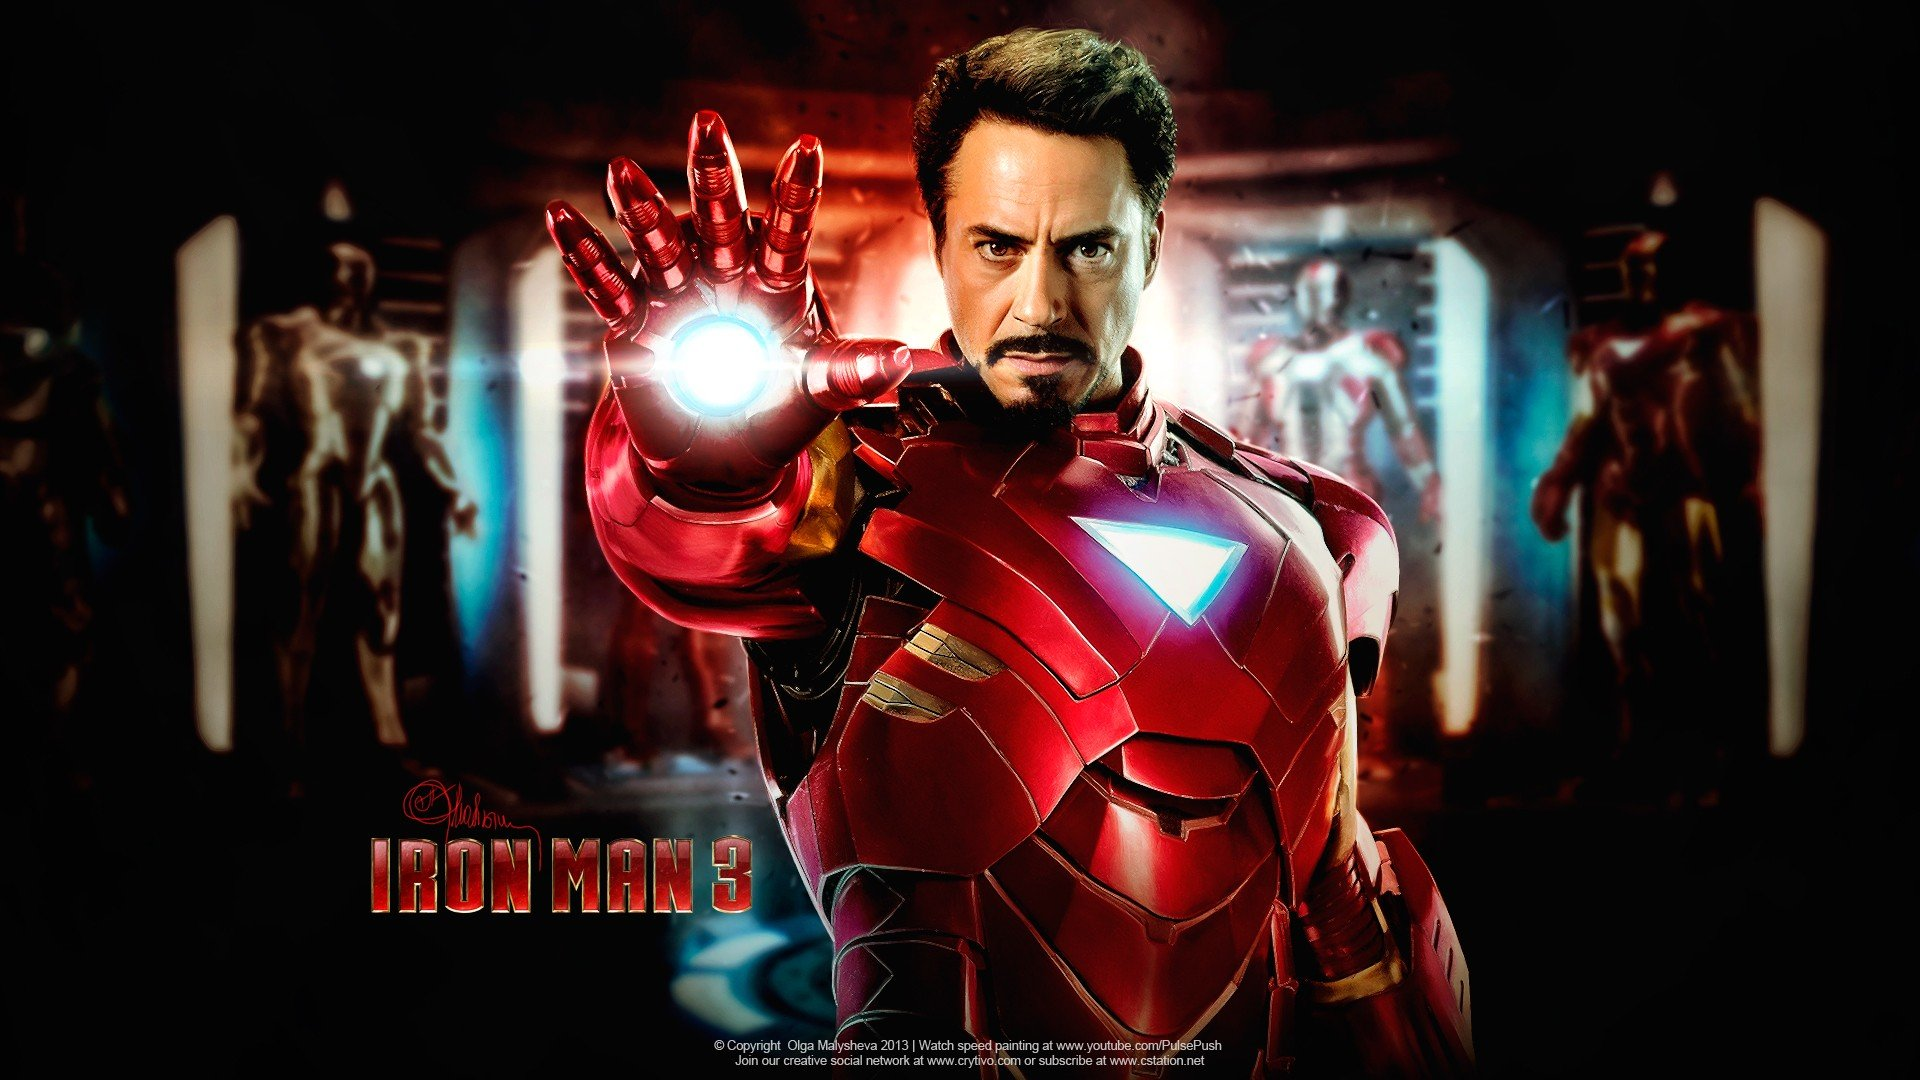 iron man 3 wallpapers hd for desktop backgrounds